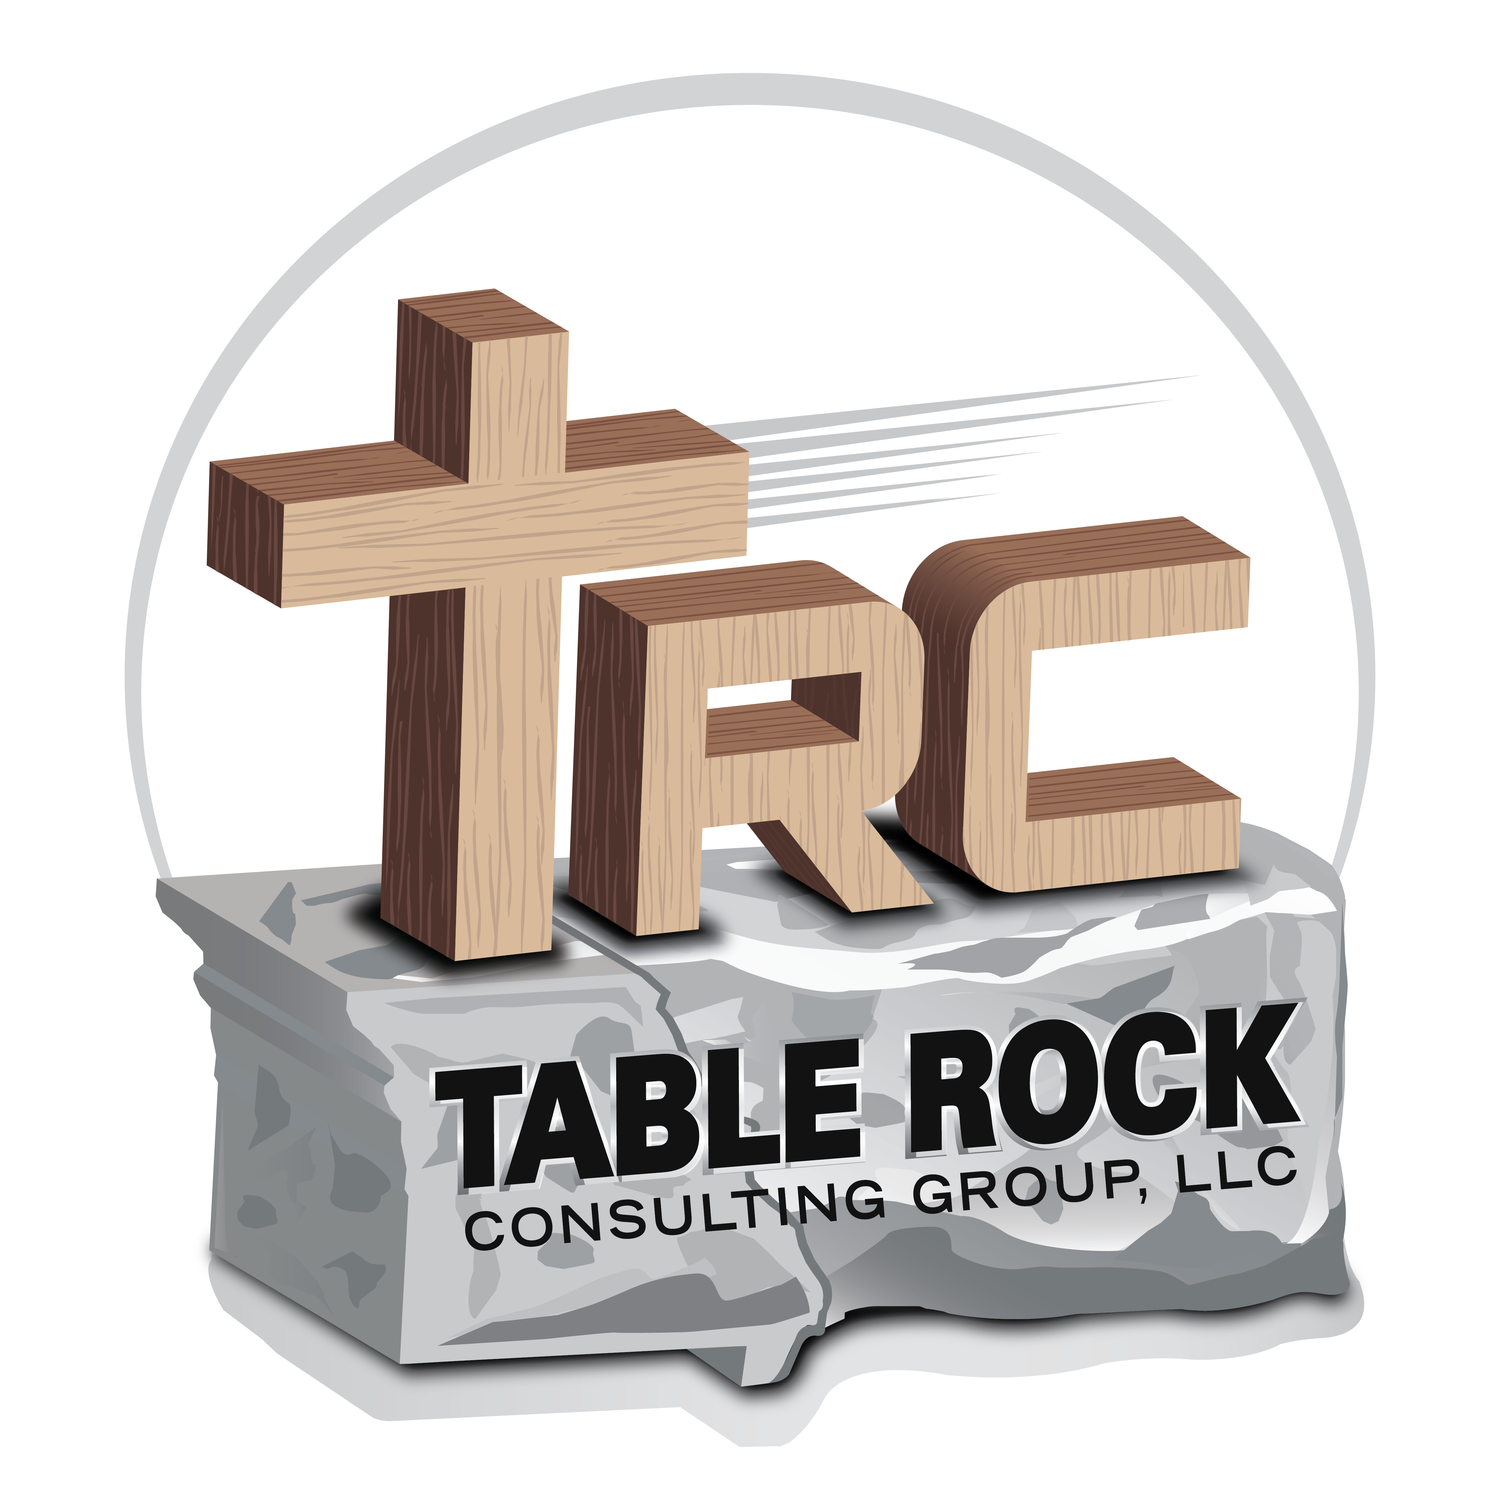 07 table rock 1000x1000 px png